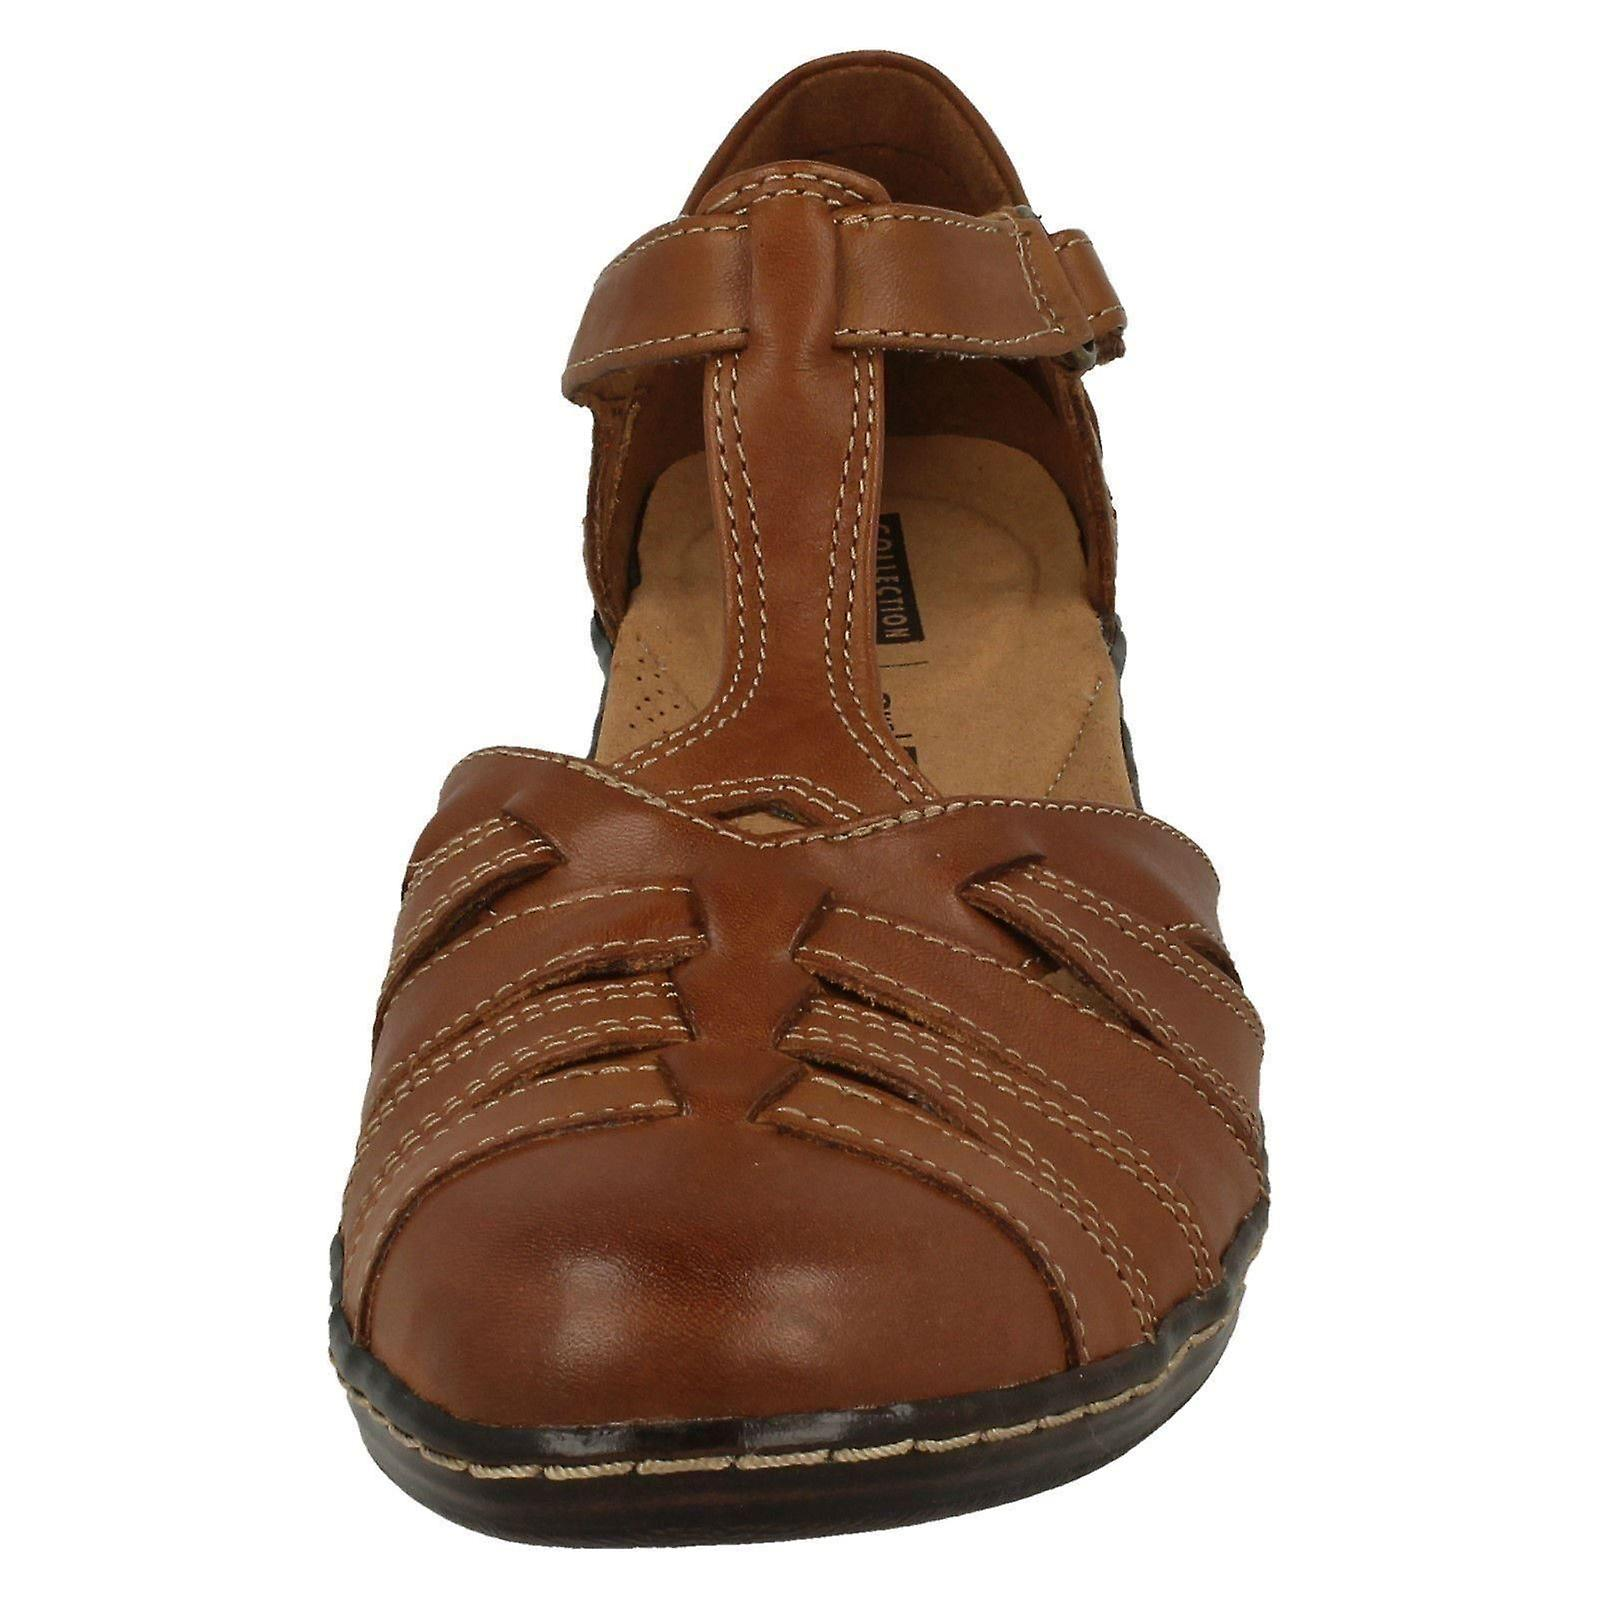 Ladies Clarks Scoop Wedge T-Bar Shoes Shoes Shoes Wendy Alto a1ac31